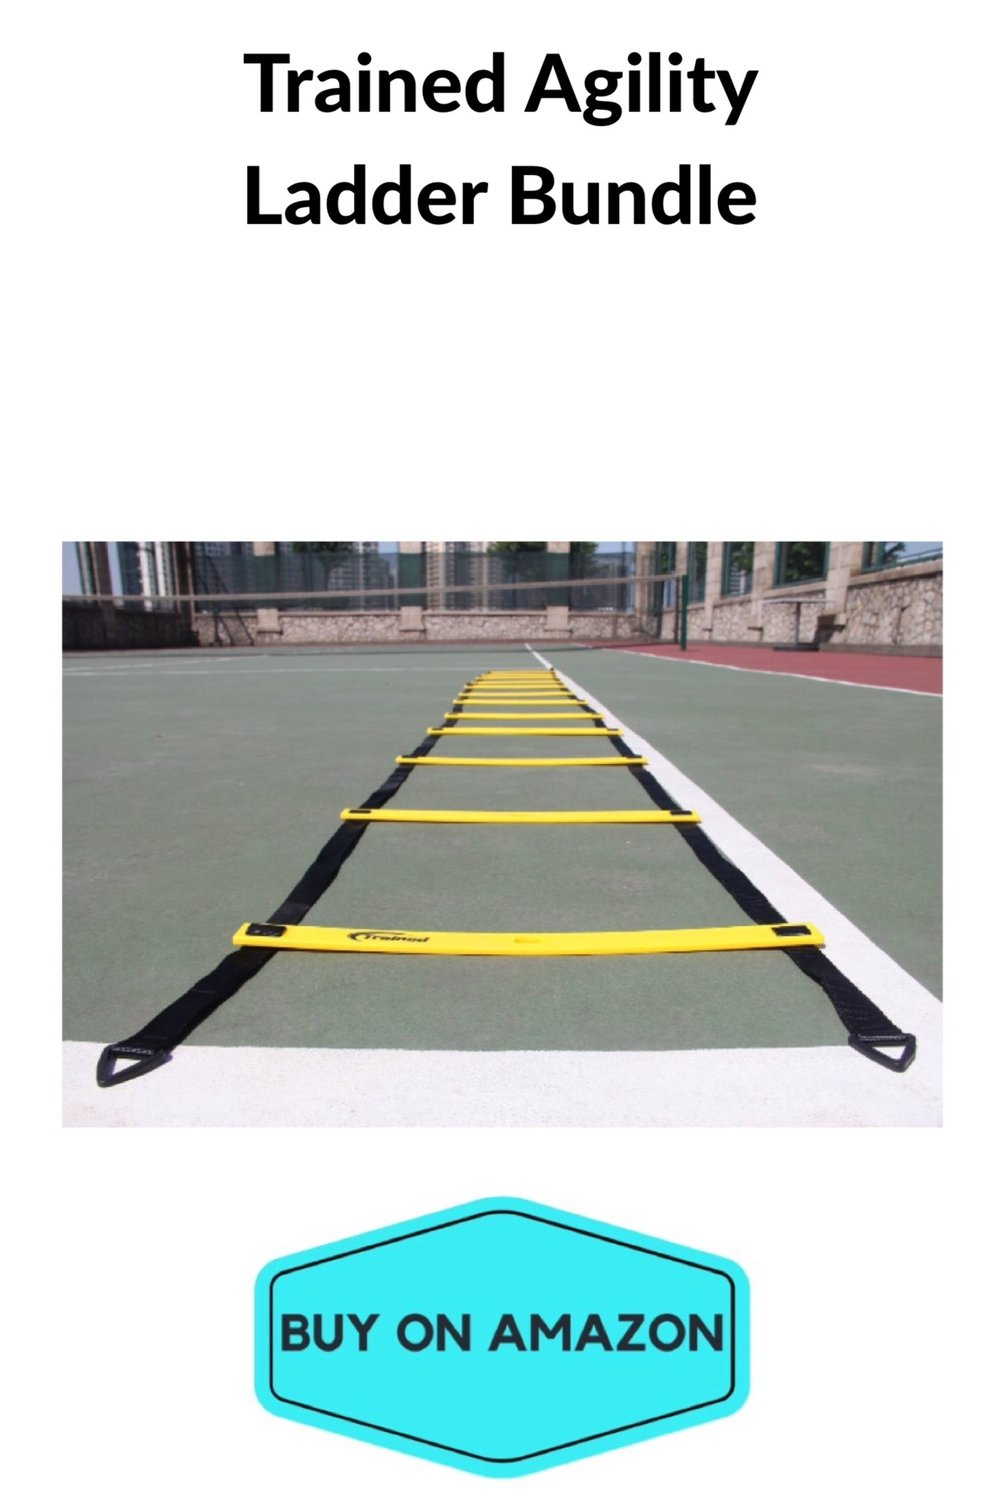 Trained Agility Ladder Bundle